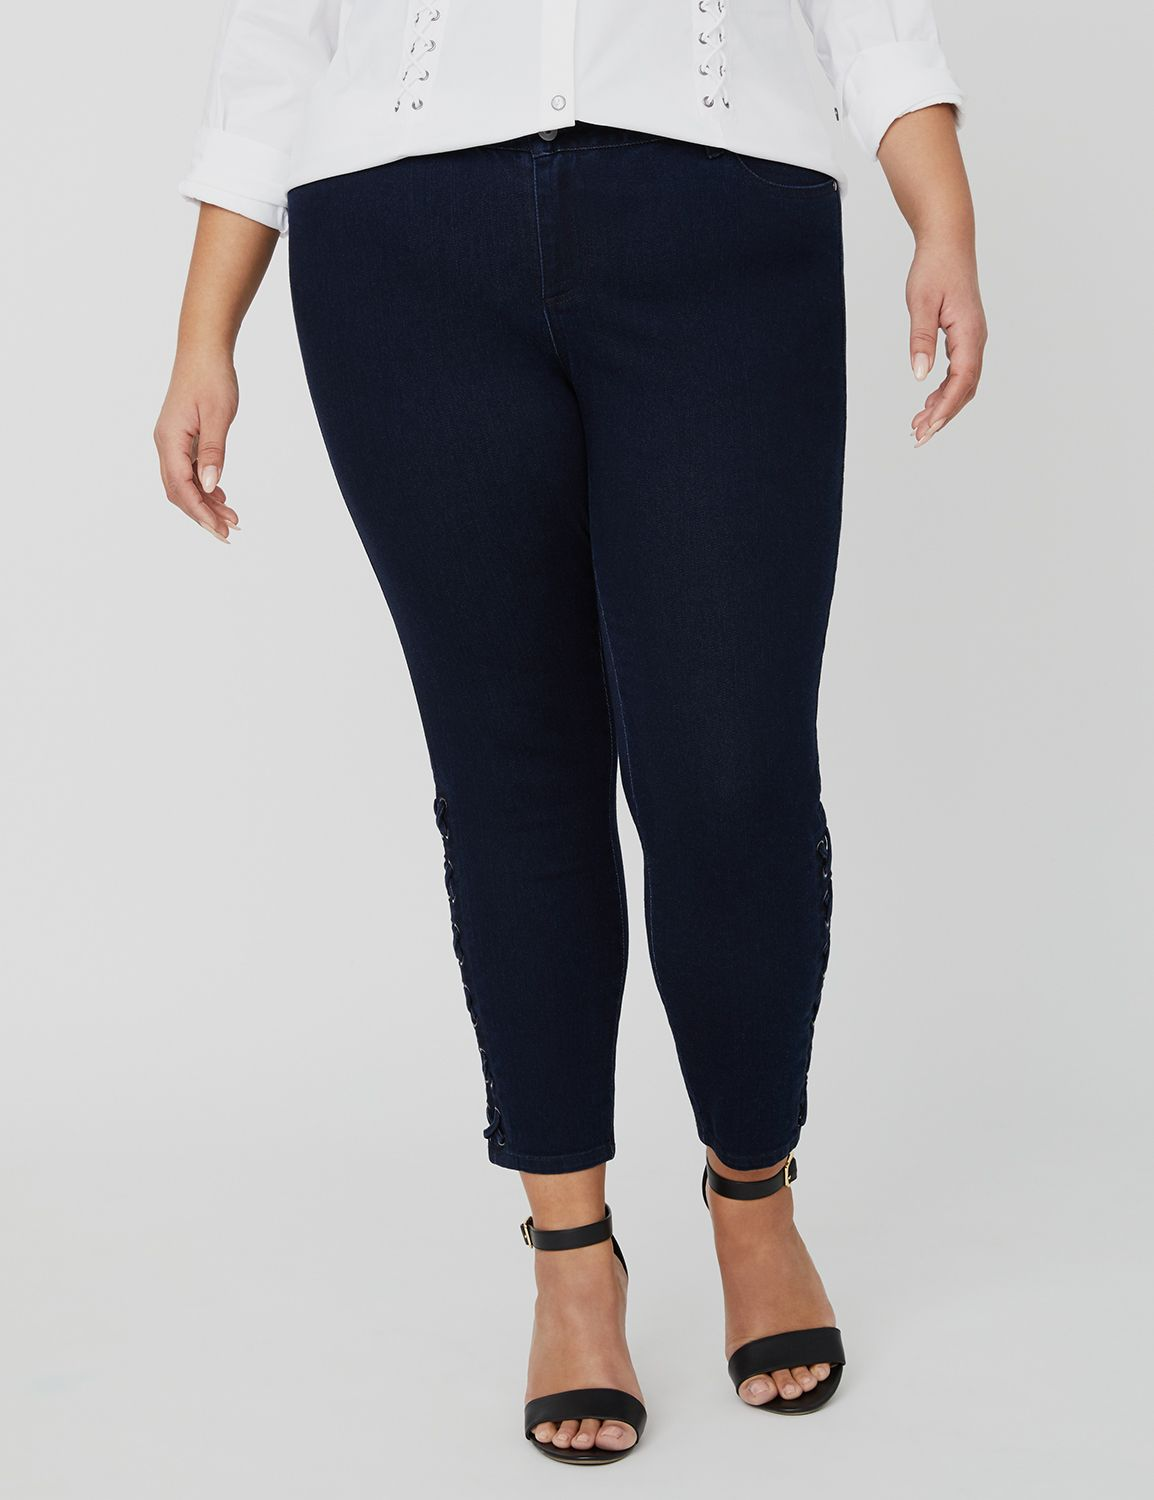 Curvy Collection Lace-Up Jean 1088607 Curvy Collection Sateen (11 MP-300099591